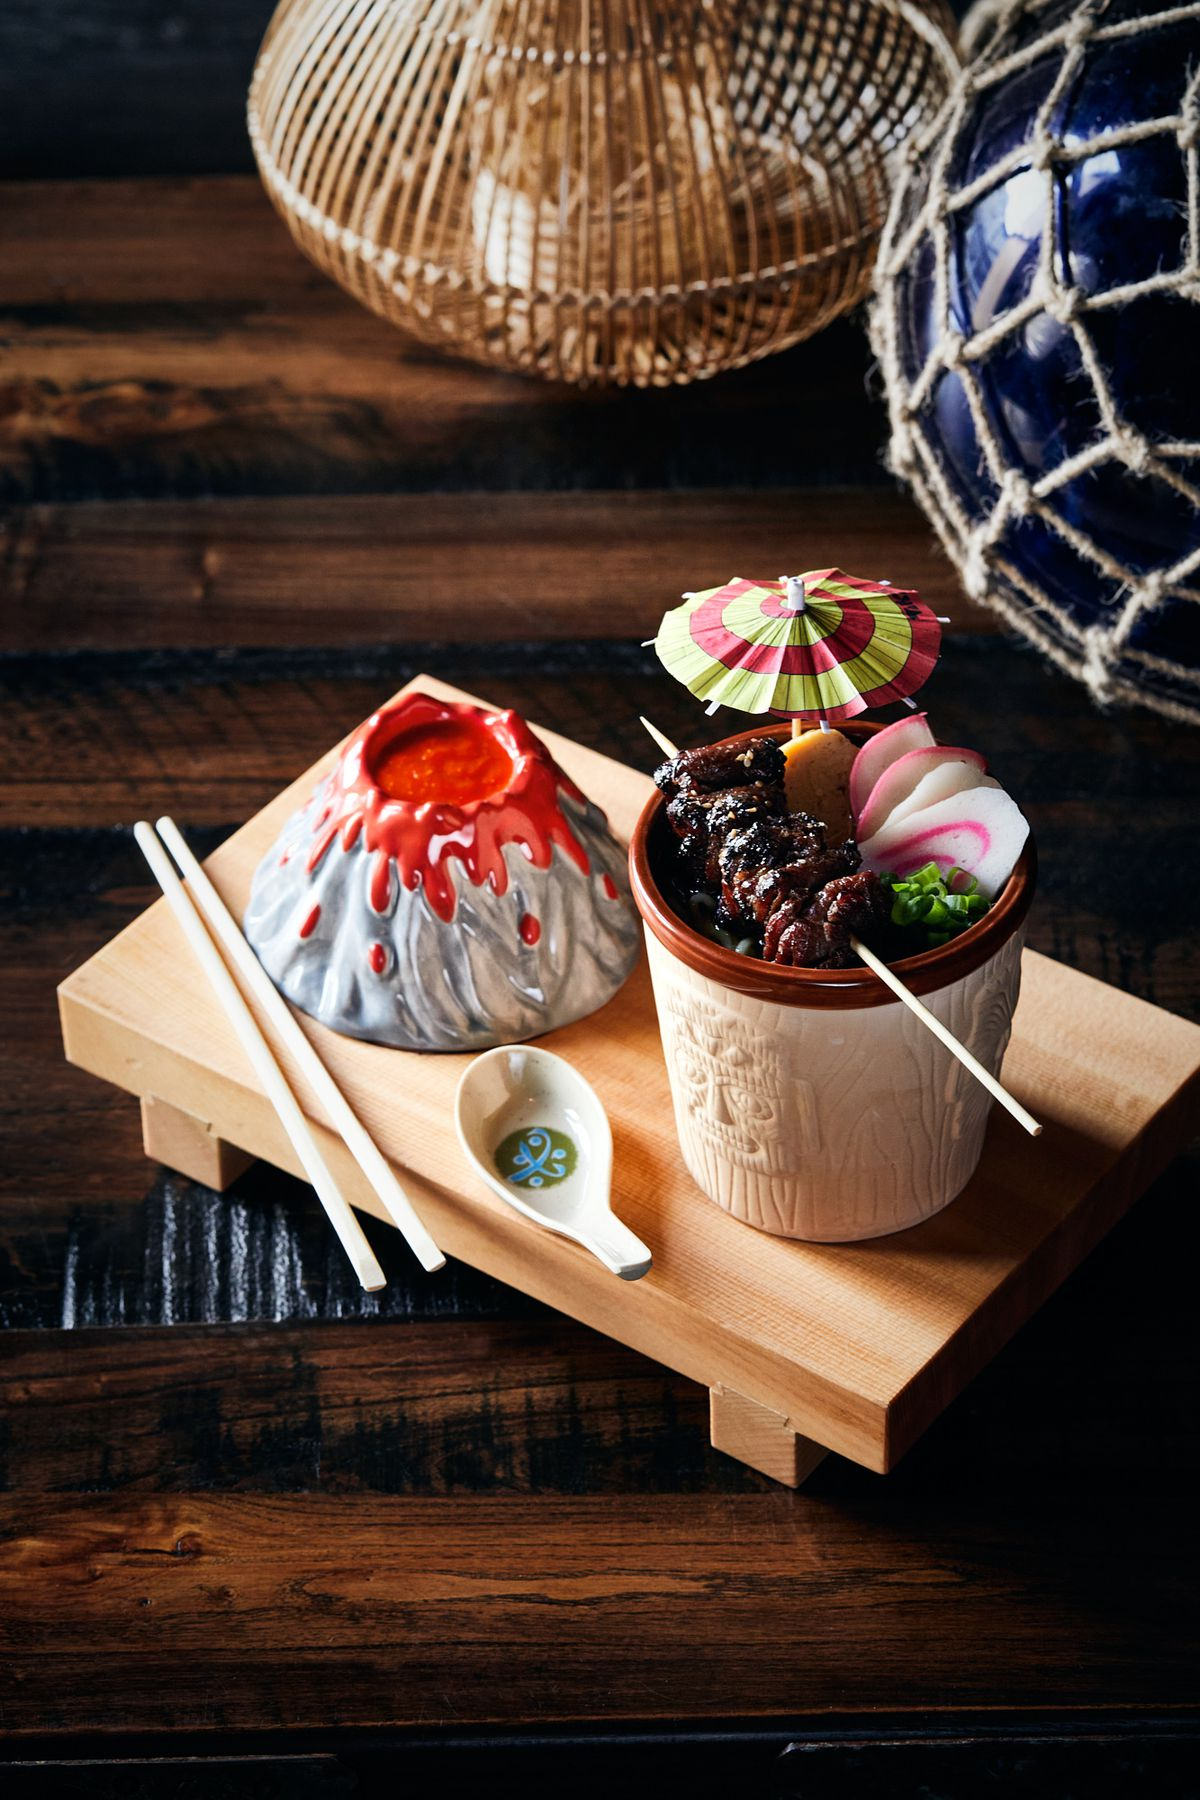 A wooden tray with a ceramic volcano replica and a mug with a skewer of meat